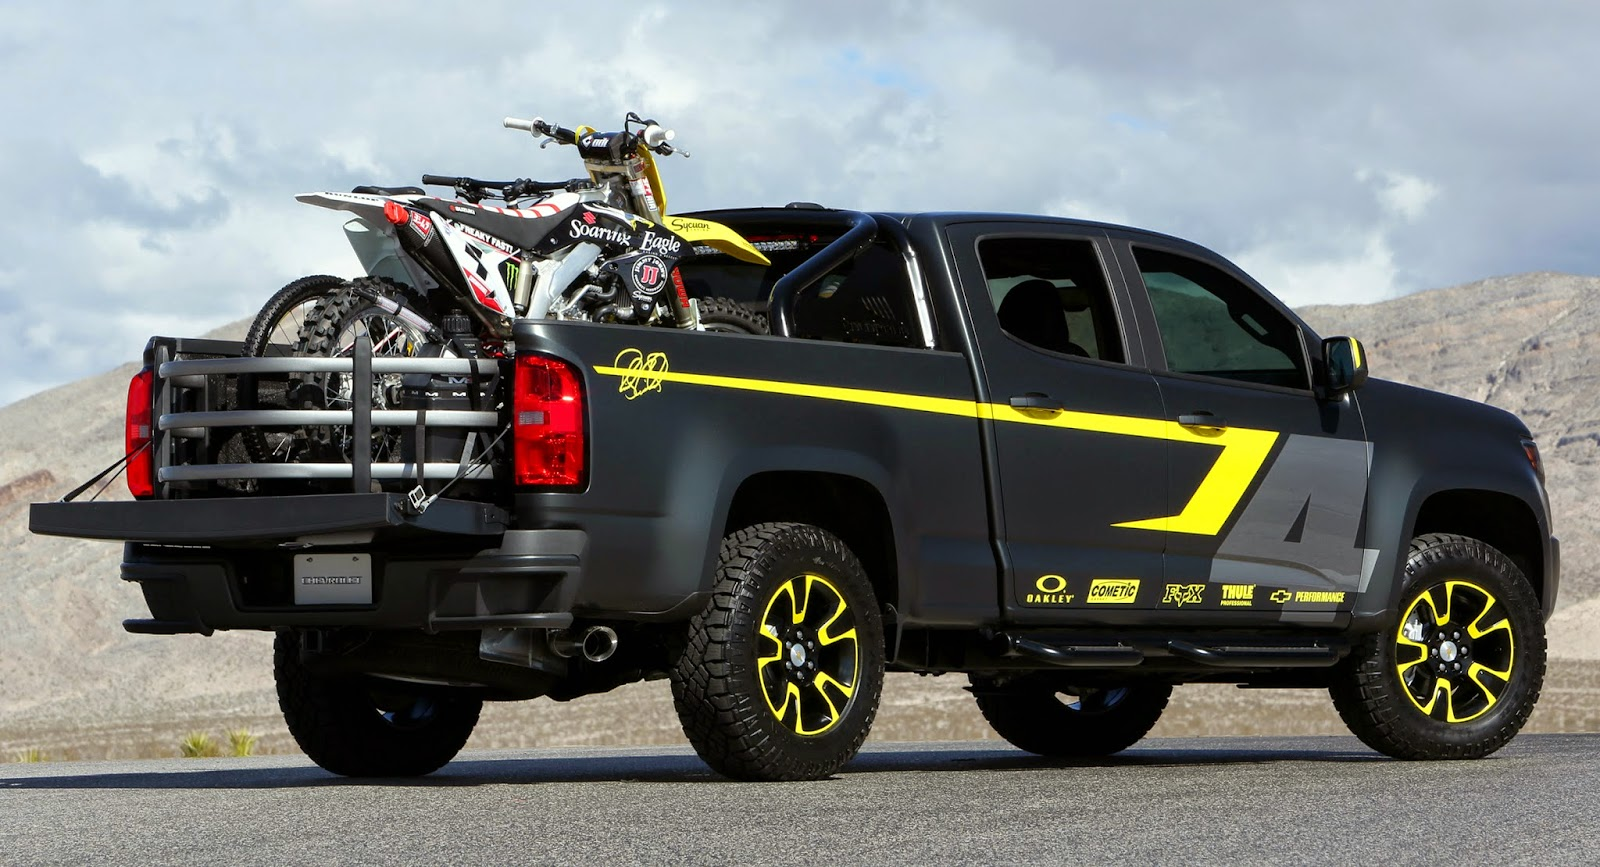 Chevy colorado performance concept enables adventure ricky carmichael helps develop package to demonstrate cargo capability flexibility